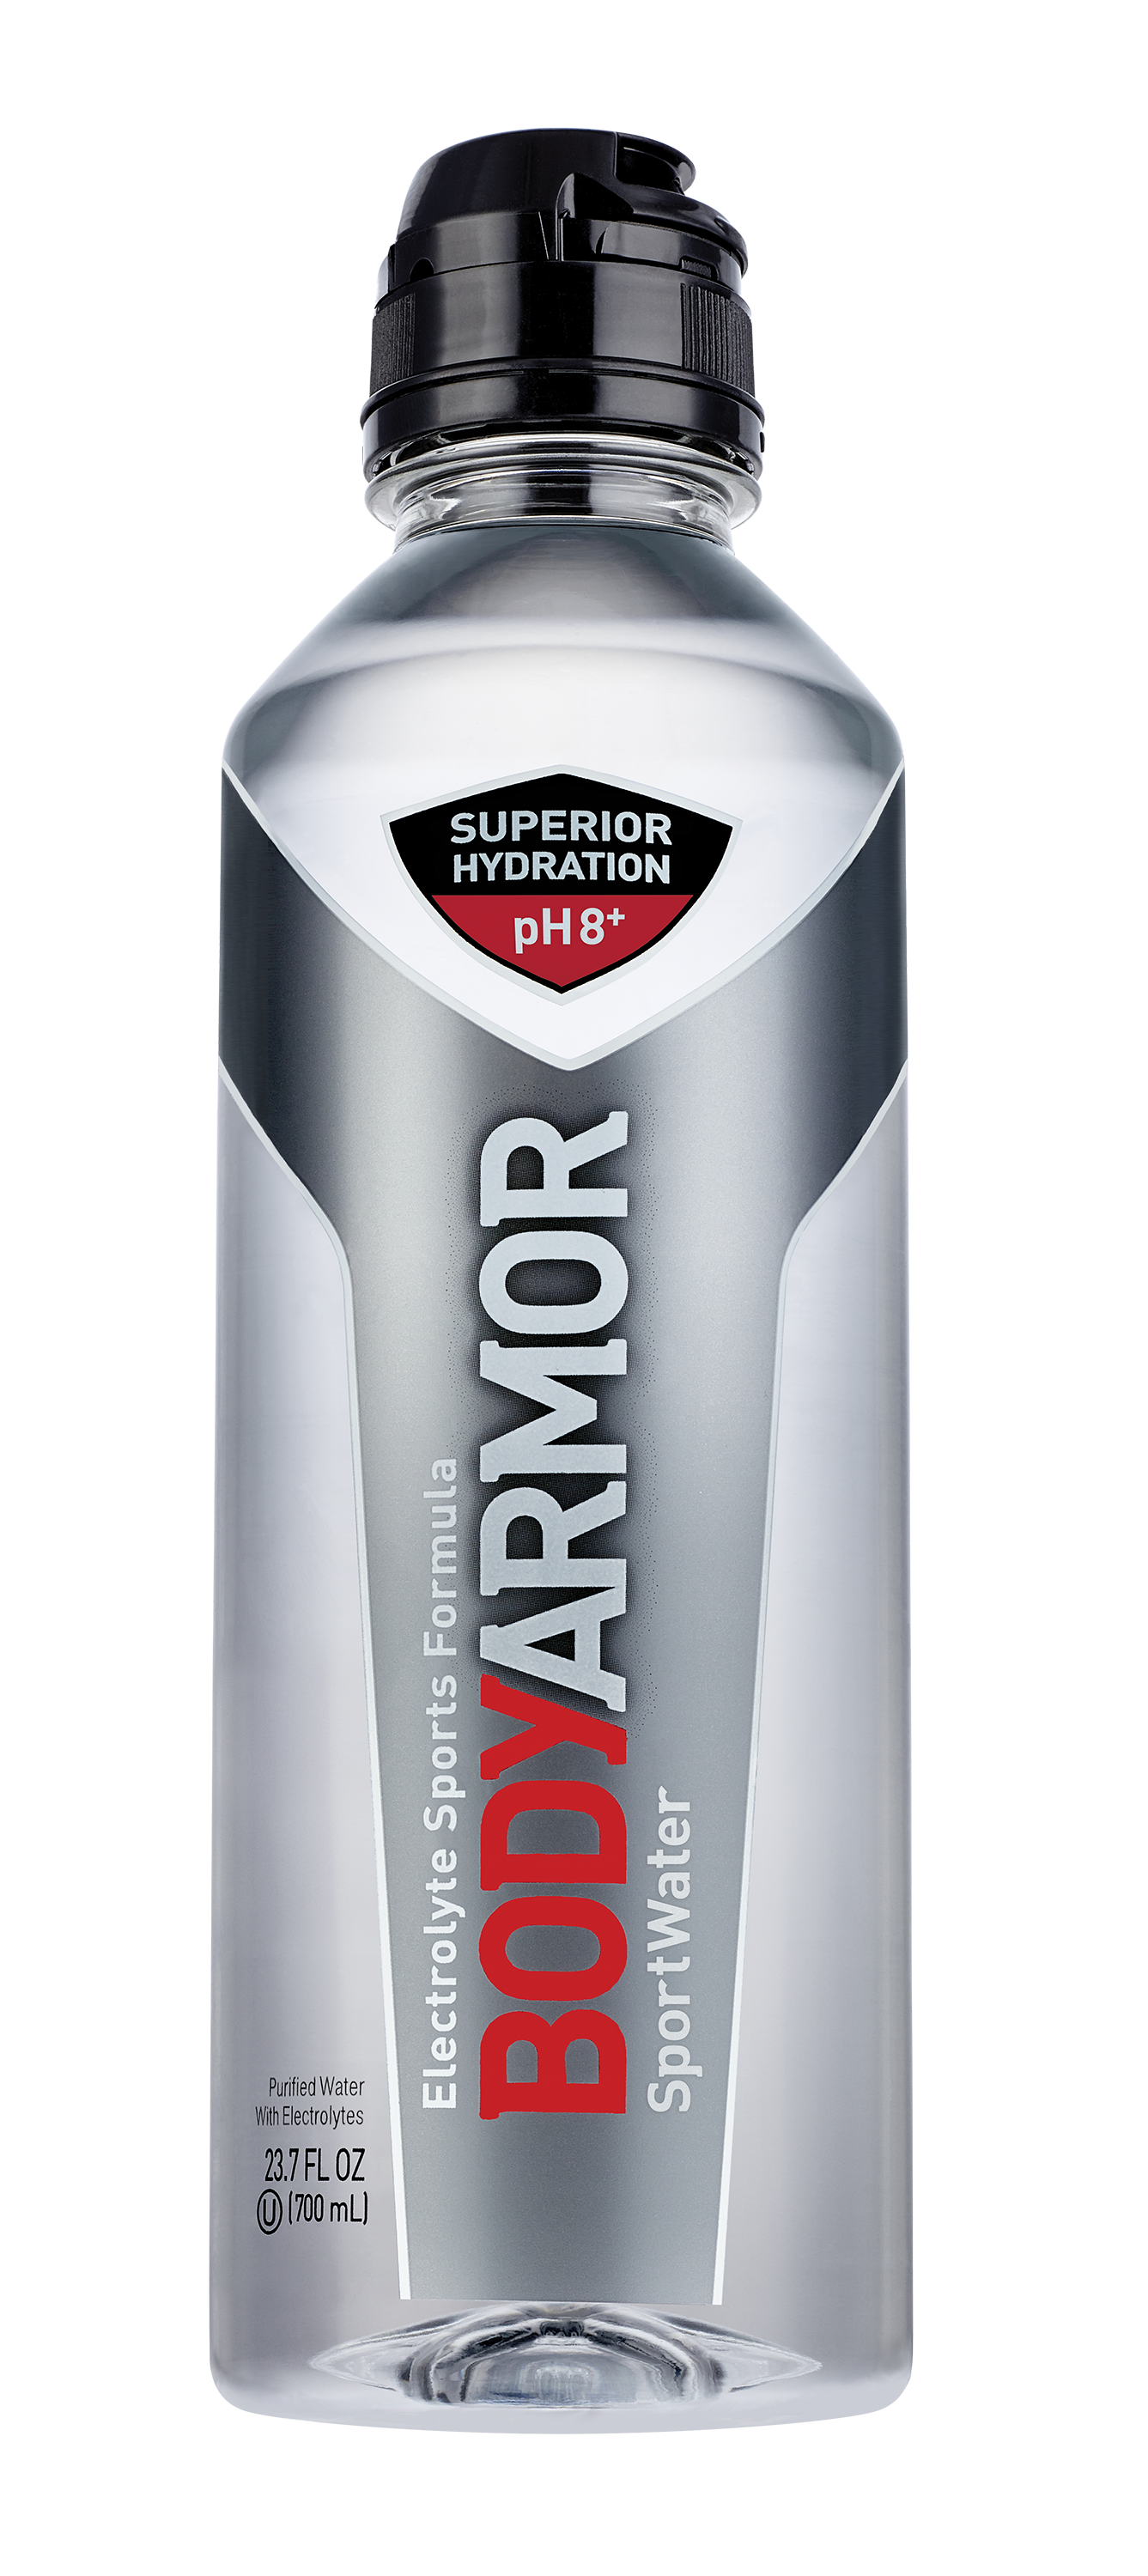 BODYARMOR, Yoga Mat, Fit Mom Essentials, Fit Mom Essentials for the New Year, Fitness Gear